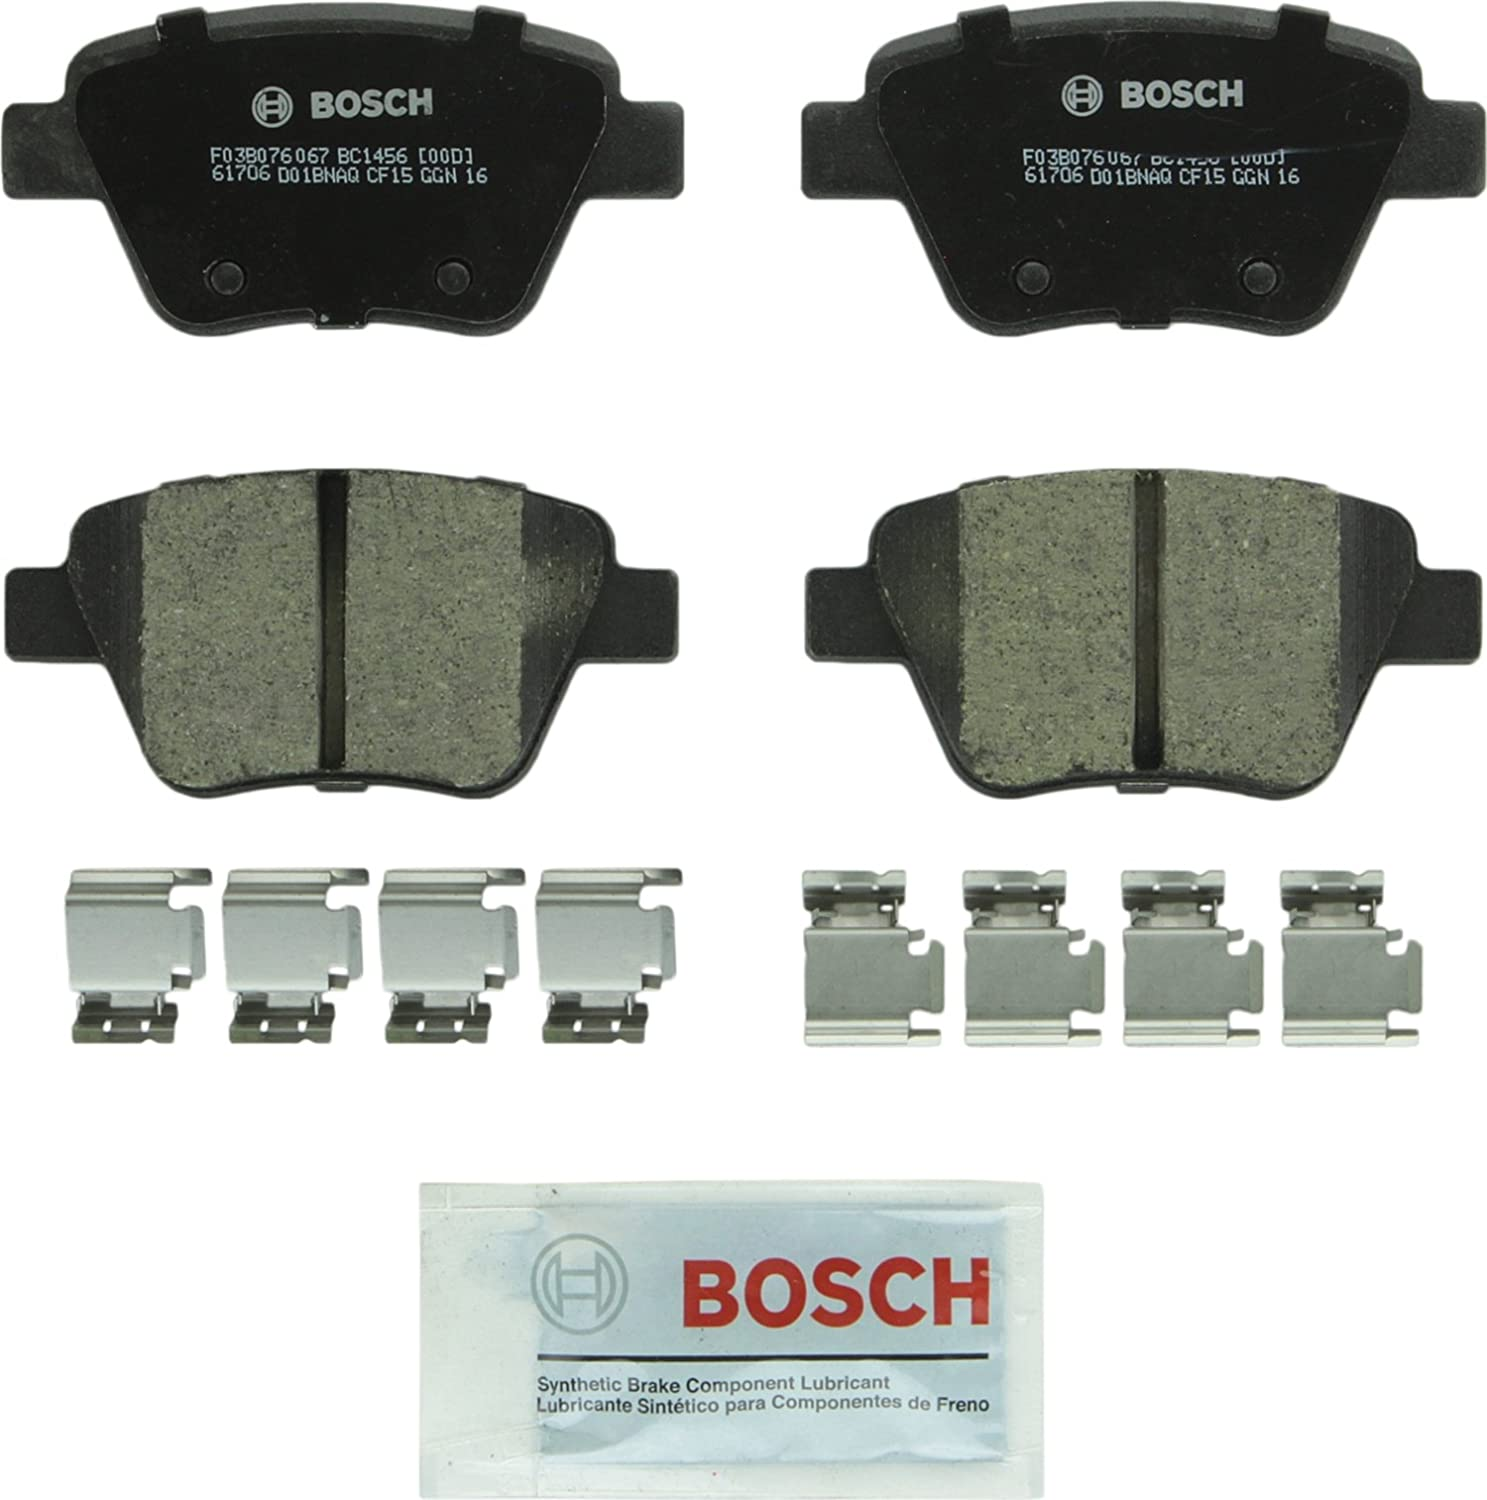 Bosch BC1456 QuietCast Premium Disc Brake Pad Set